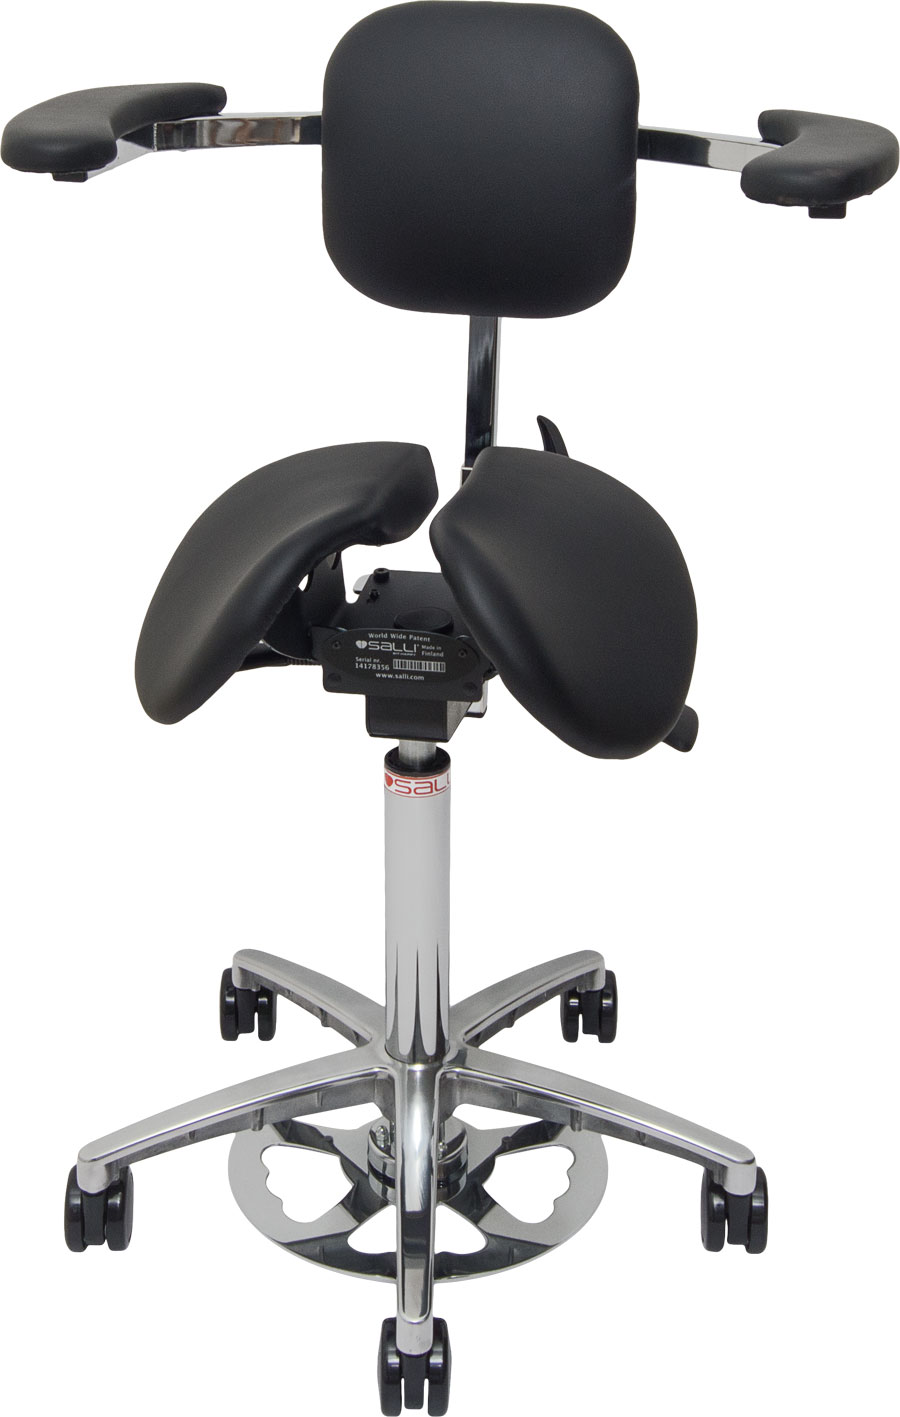 Salli Expert Saddle Chair With Arm Supports